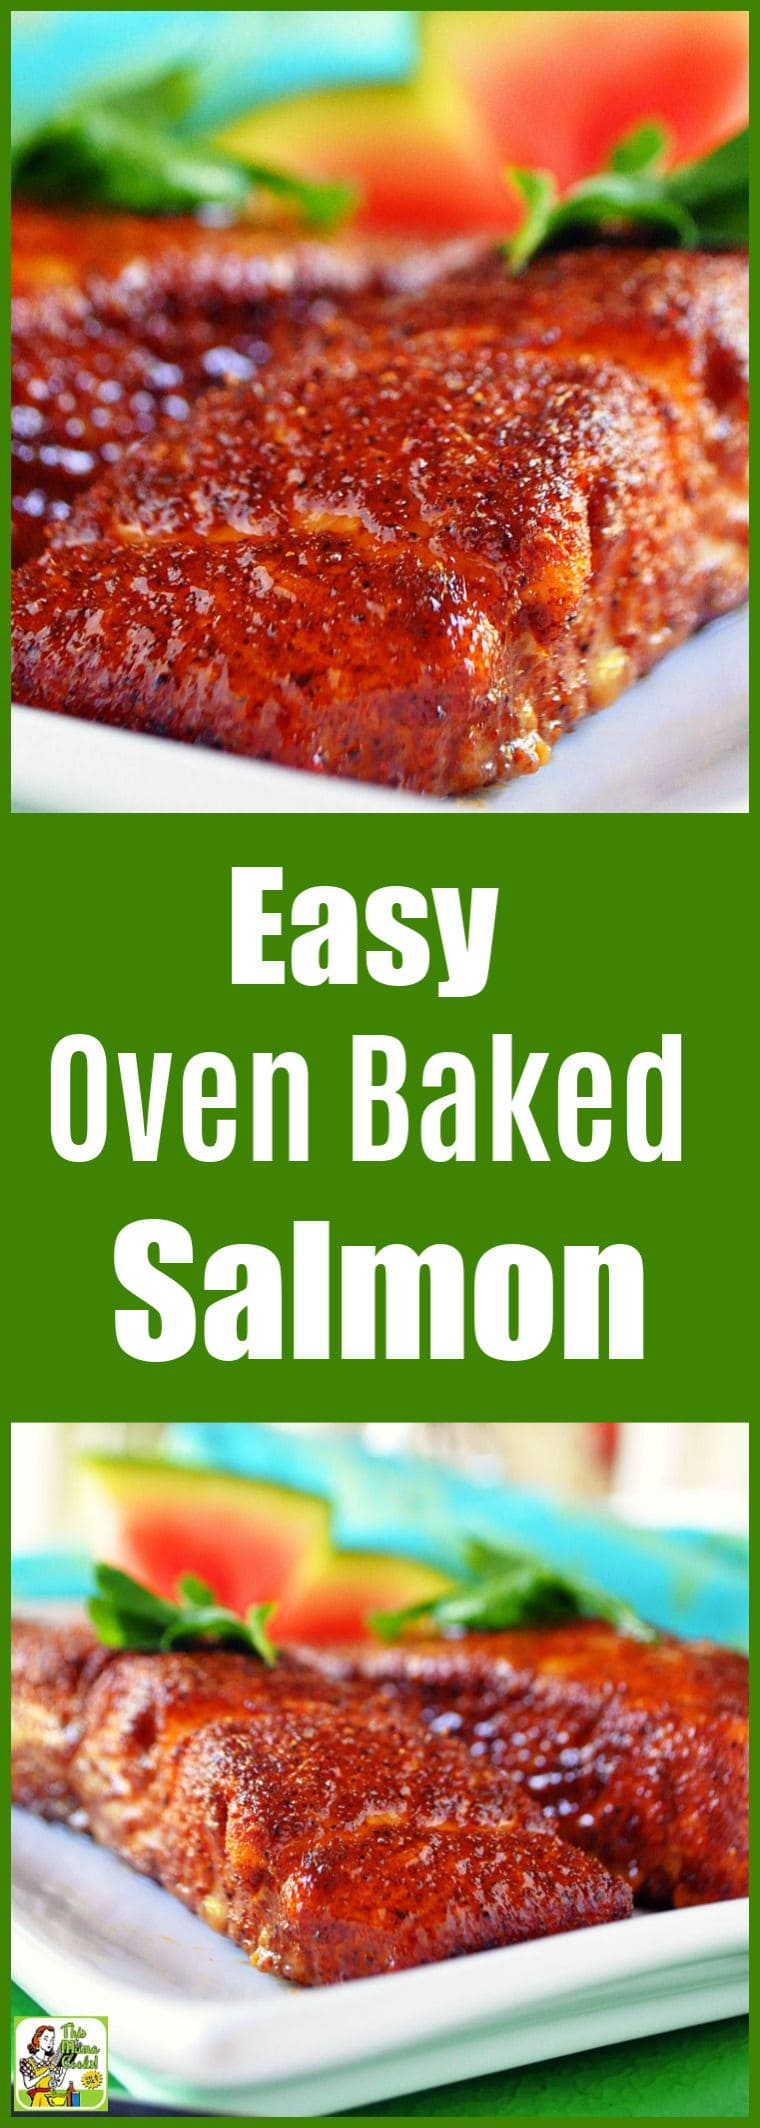 Love salmon but don't know how to cook it? Try this Easy Oven Baked Salmon recipe. This easy fish recipe that can be made in under 25 minutes. #recipes #glutenfree #glutenfreerecipes #dinner #easydinner #dinnerrecipes #fish #salmon